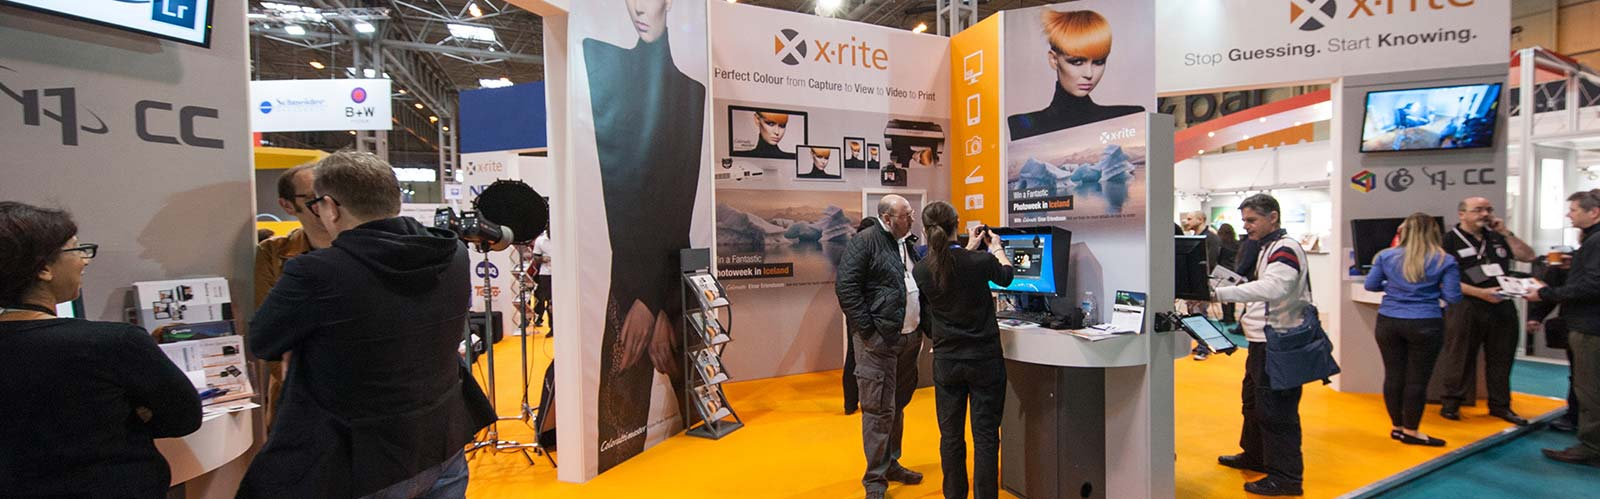 XPD exhibition stand